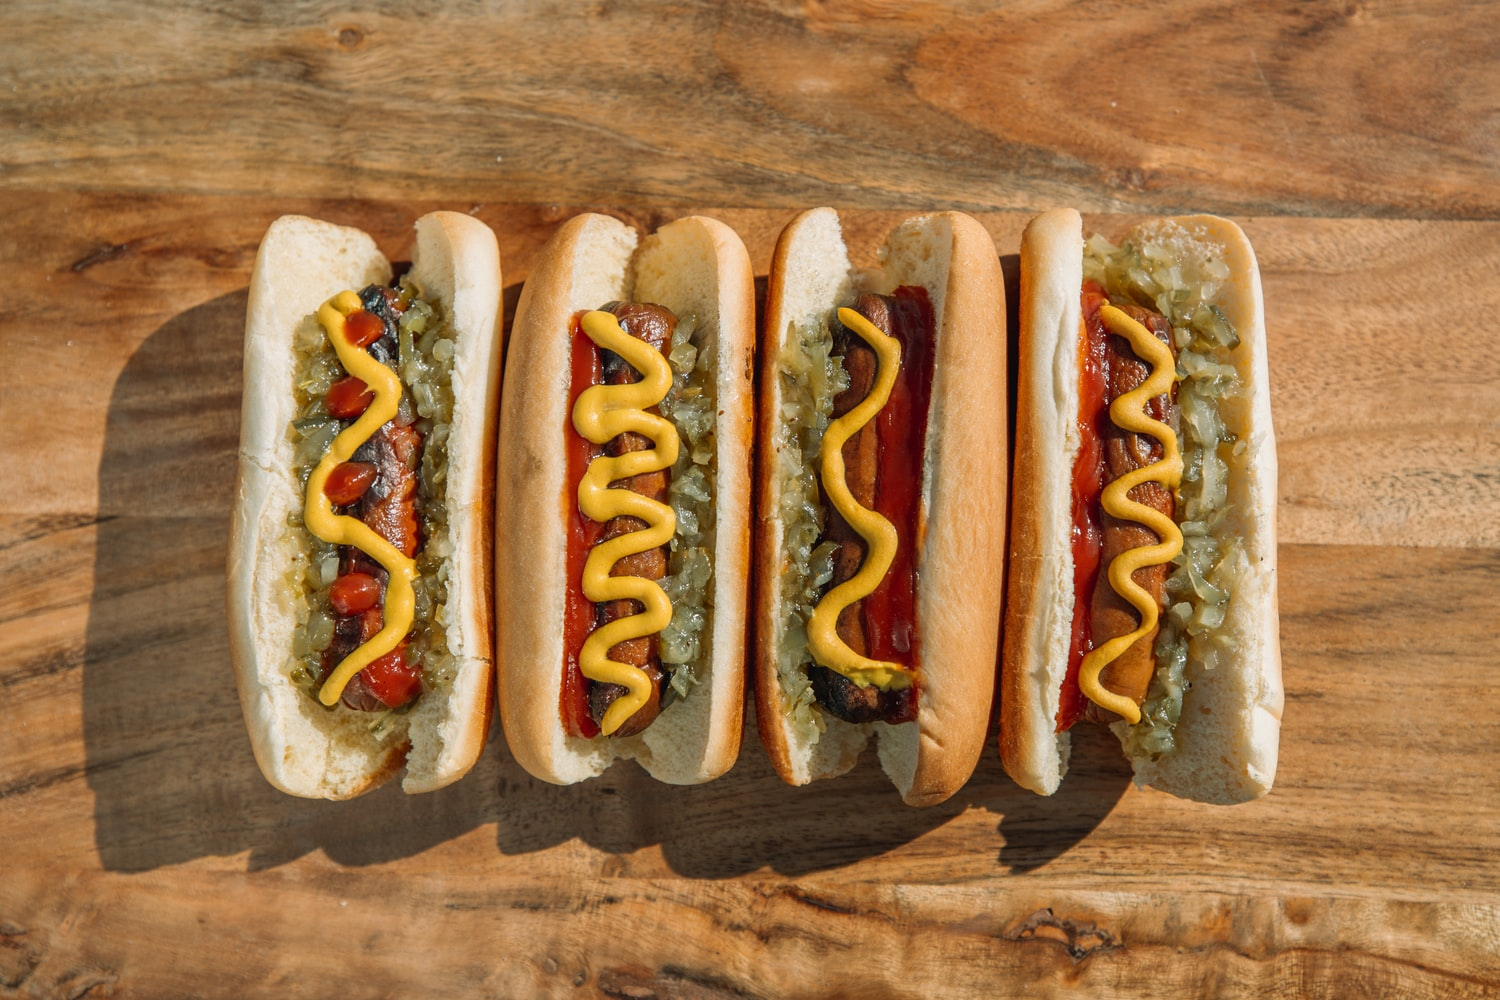 How to Cook Hot Dogs in an Oven